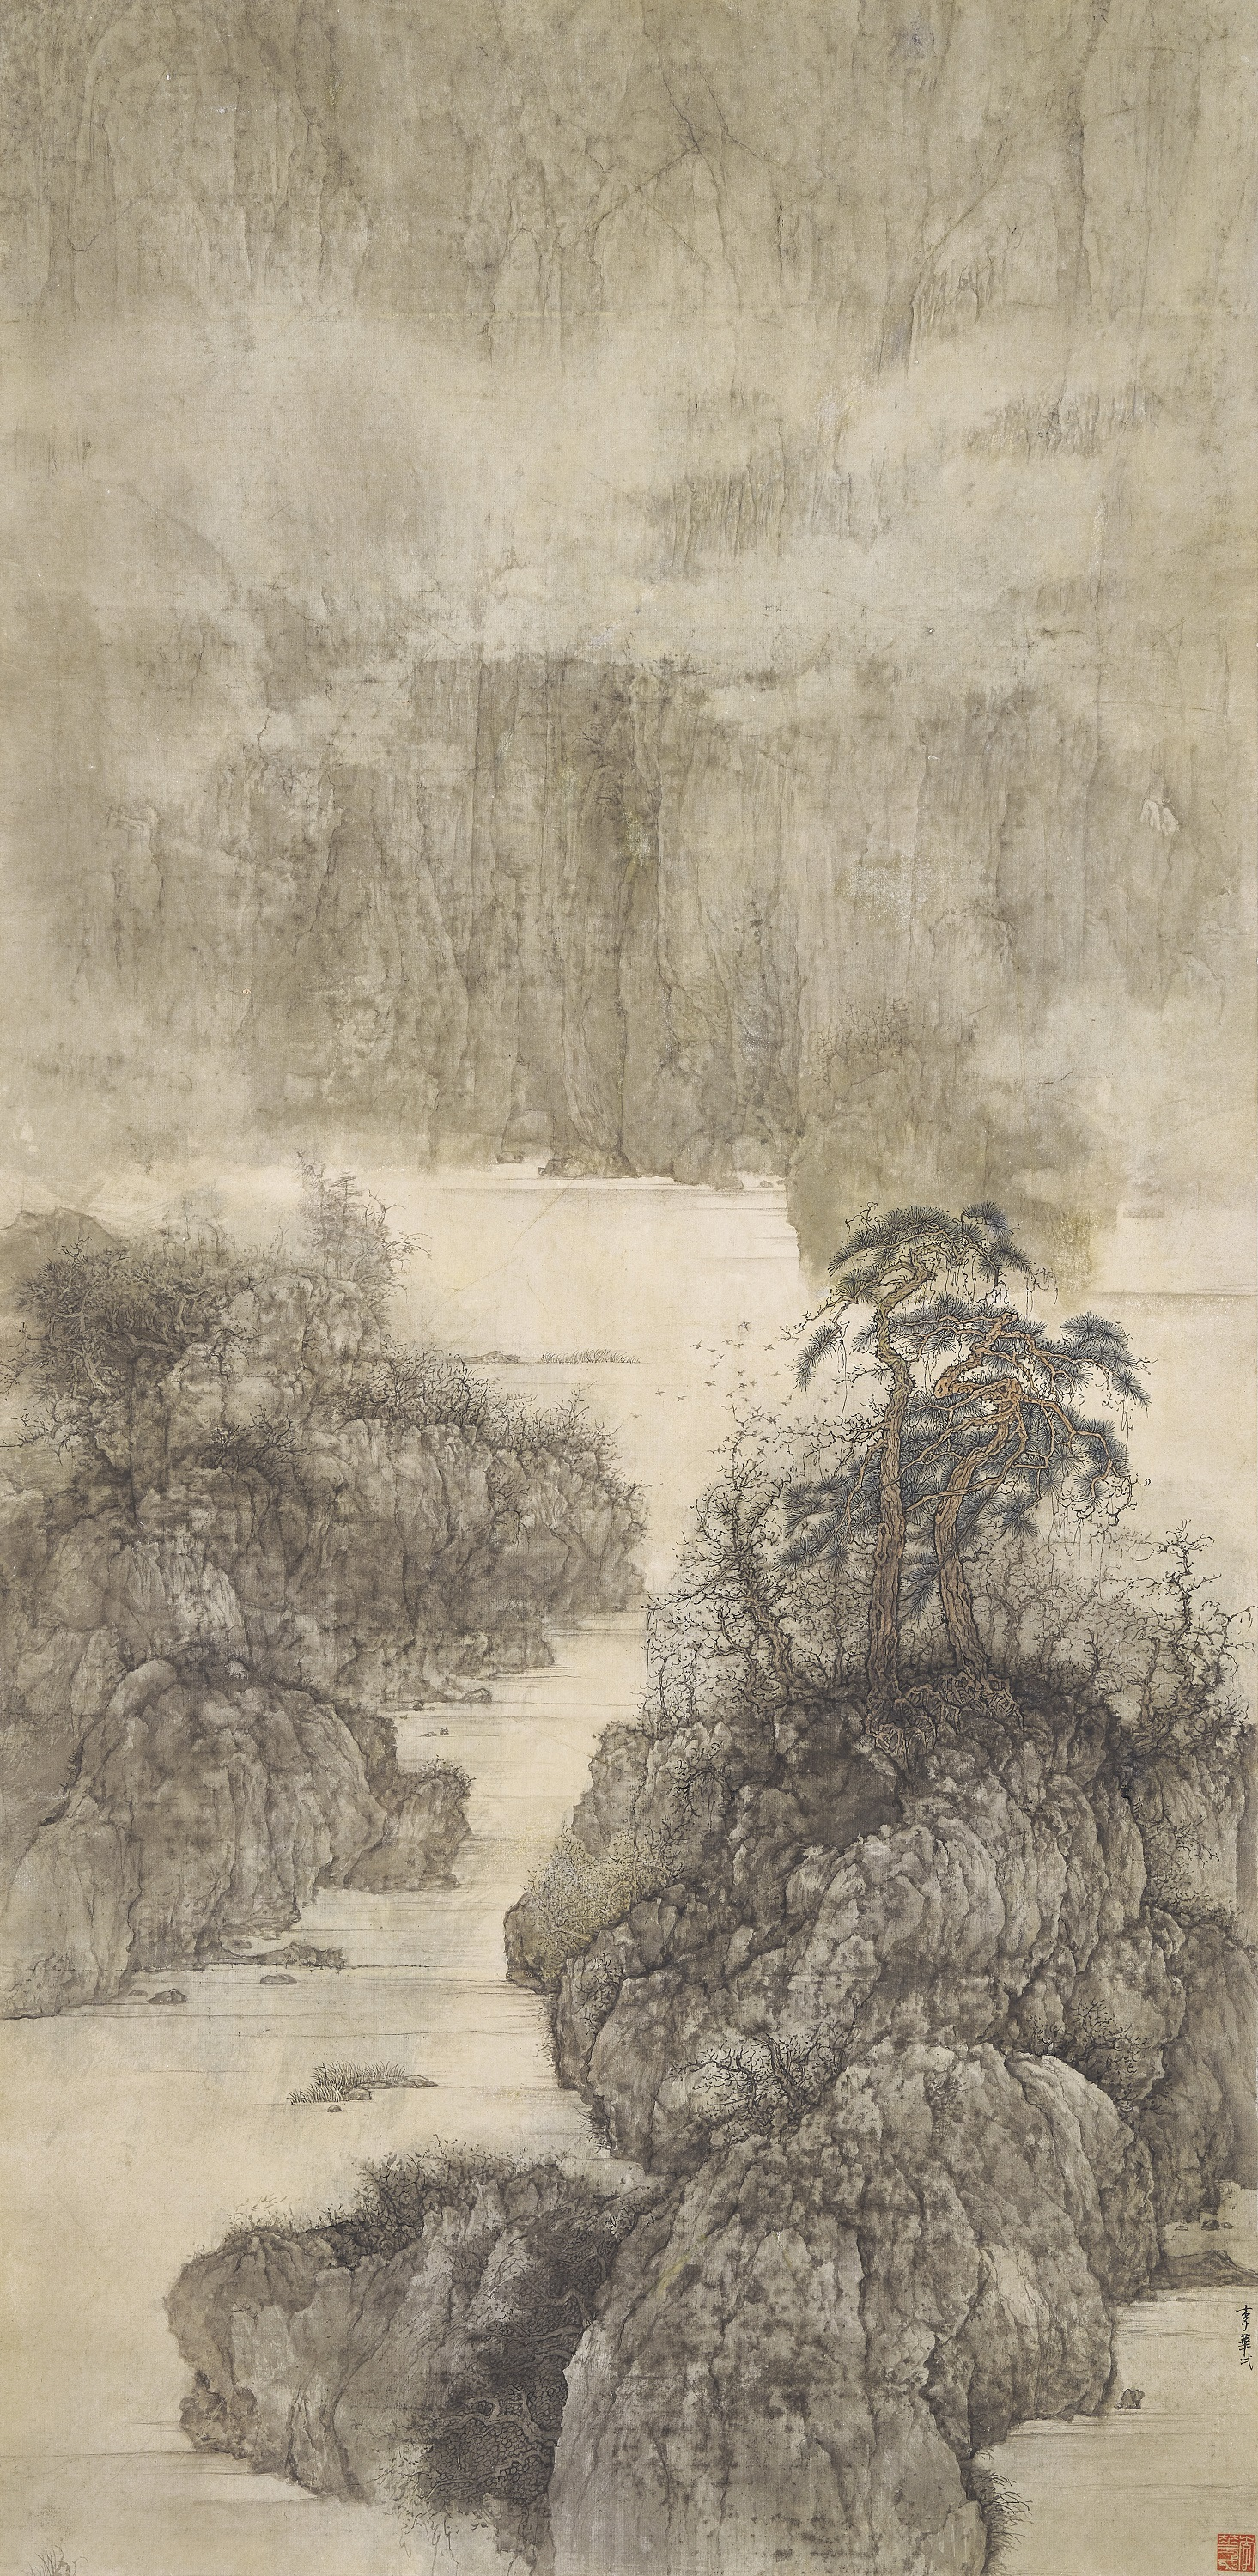 From an important Hong Kong private collection. Li Huayi (B. 1948), Landscape (No. 9). Scroll, mounted and framed, ink and colour on paper. 132.5 × 64.5 cm. (52 ⅛ x 25 ⅜ in.). Estimate HK$1,500,000 - 2,000,000. Offered in Fine Chinese Modern and Contemporary Ink Paintings on 1 December at Christie's in Hong Kong.